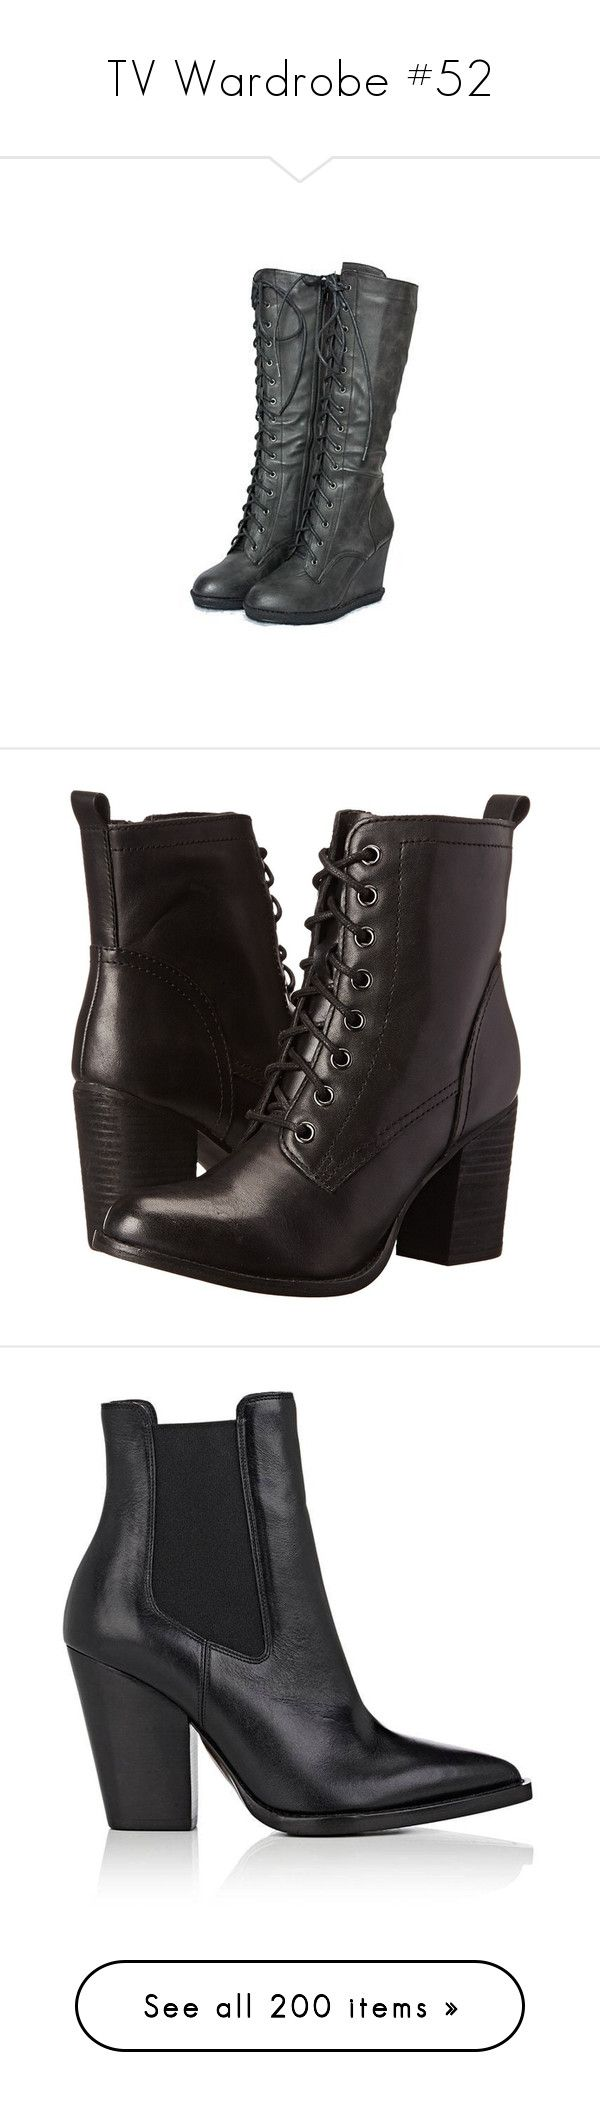 """""""TV Wardrobe #52"""" by demiwitch-of-mischief ❤ liked on Polyvore featuring shoes, boots, heels, steampunk, botas, gothic combat boots, combat boots, black heeled boots, goth boots and black goth boots"""